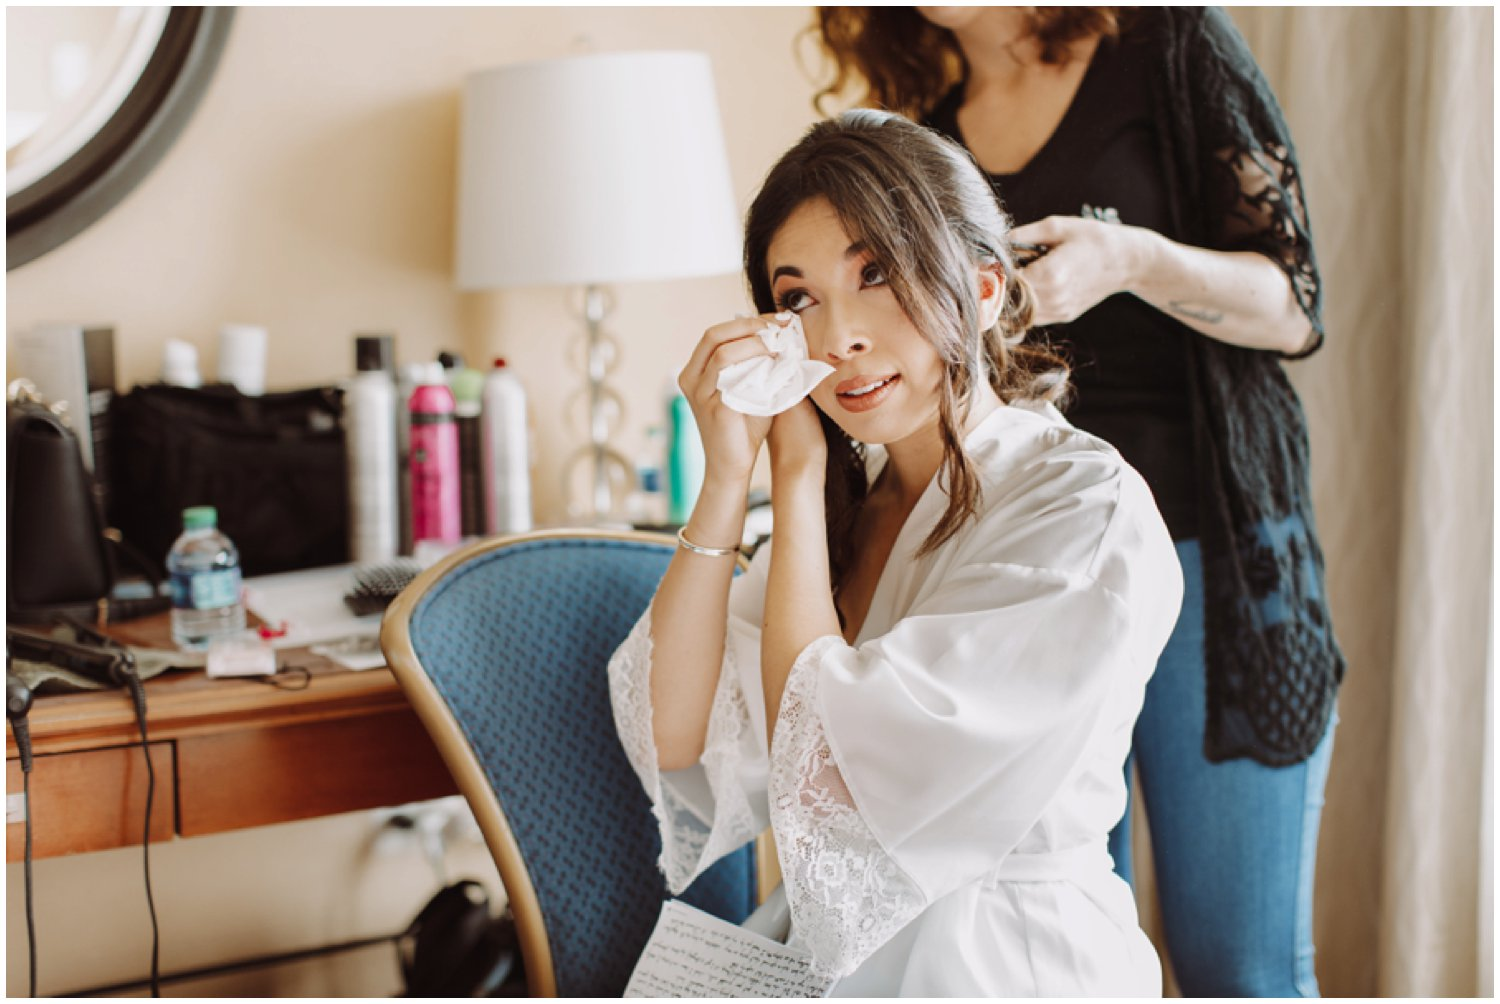 Baltimore wedding photographer | bridal getting ready portraits